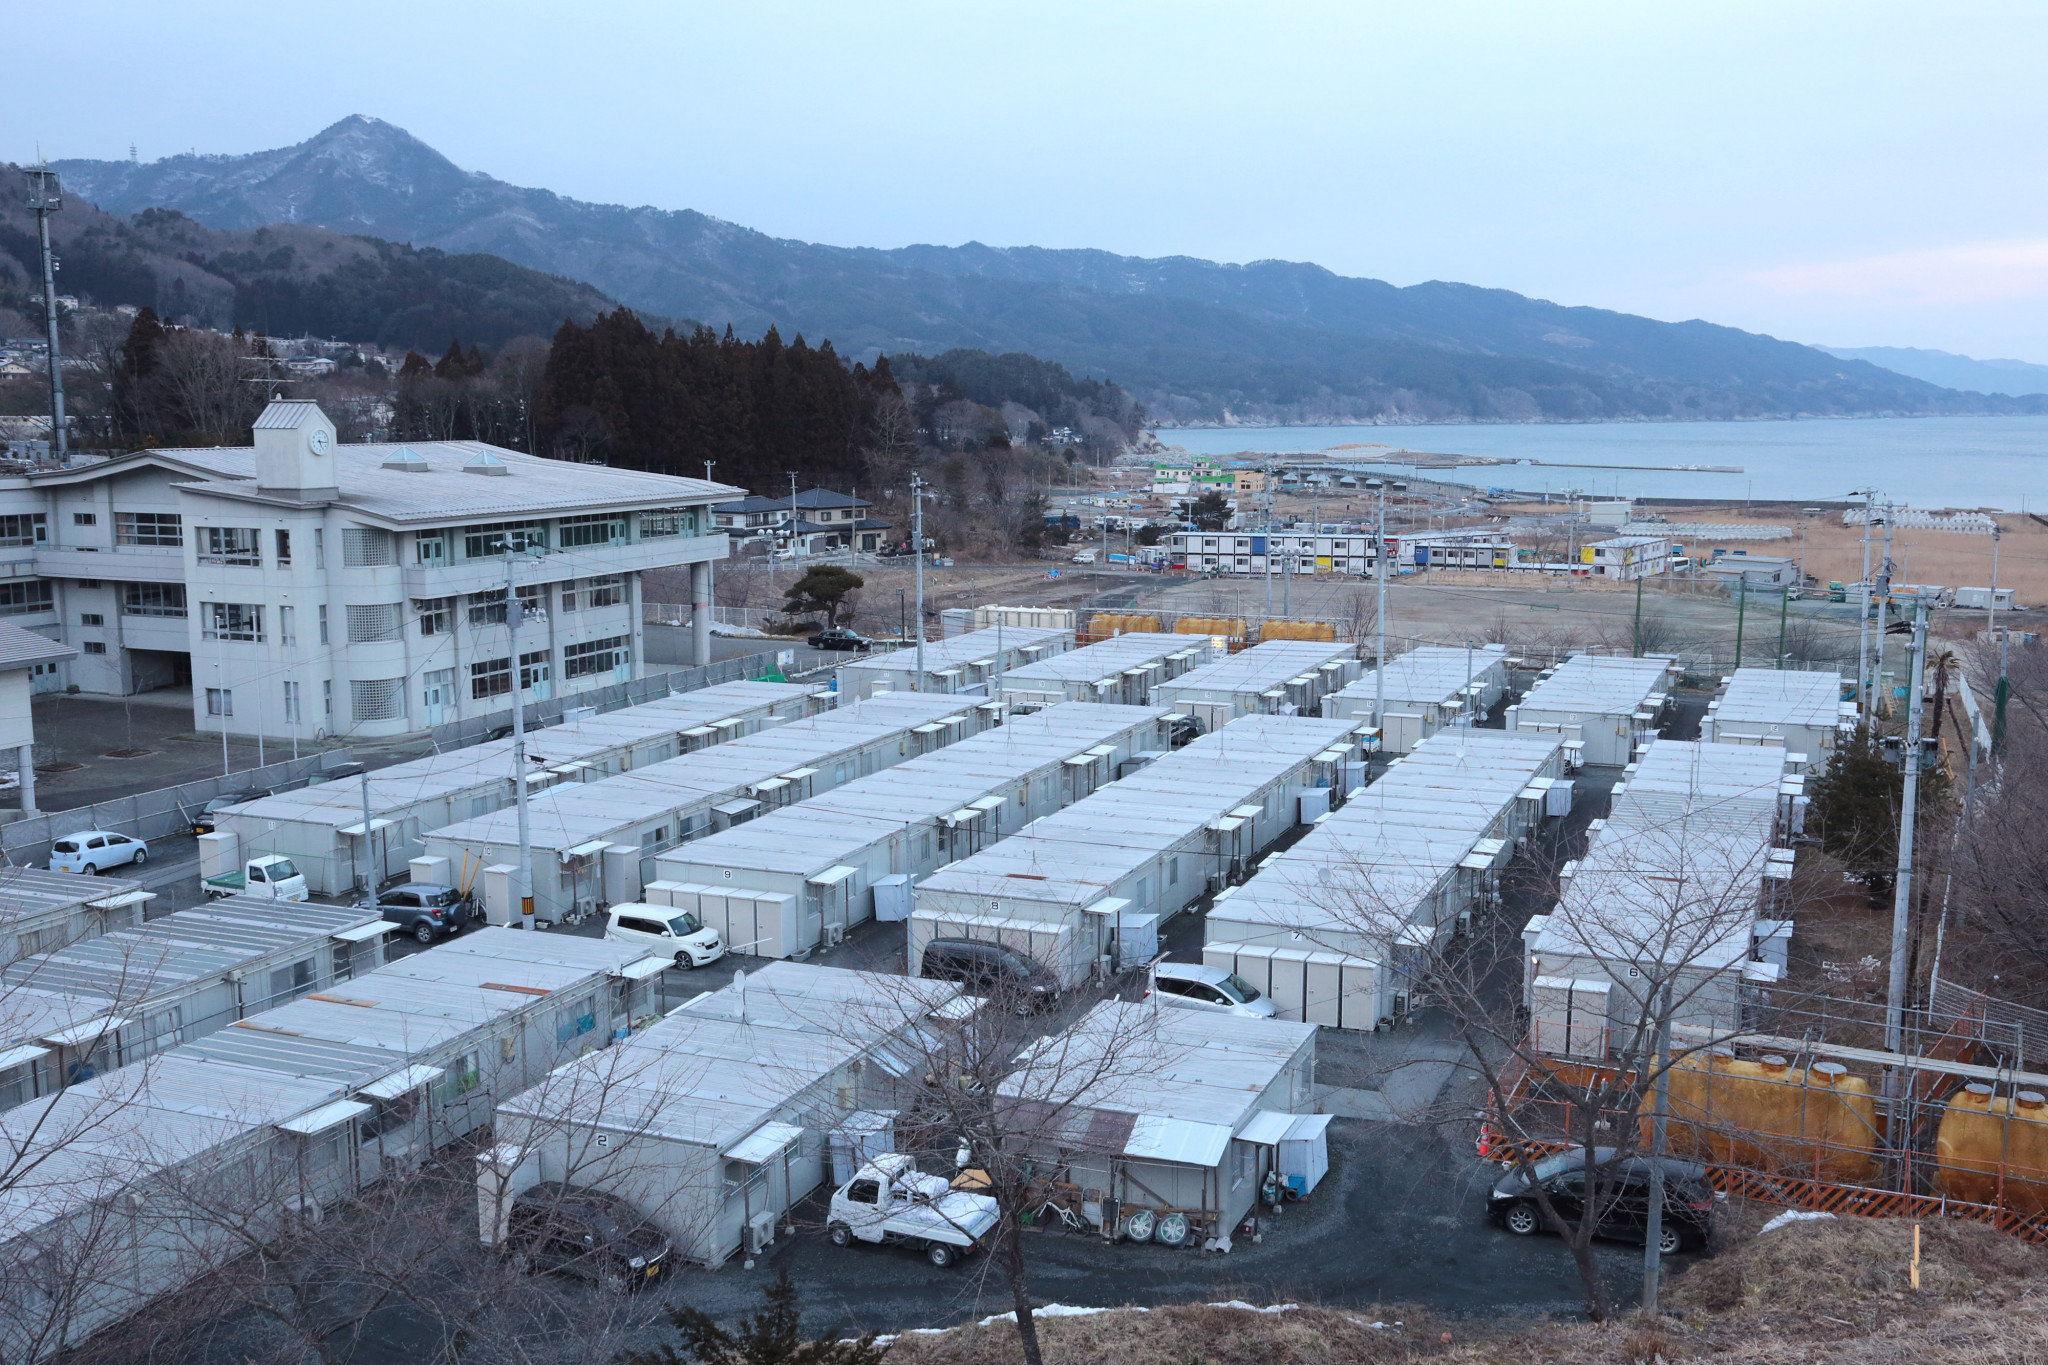 Recycled aluminium from temporary housing in Fukushima to be used for Tokyo 2020 Olympic Torches